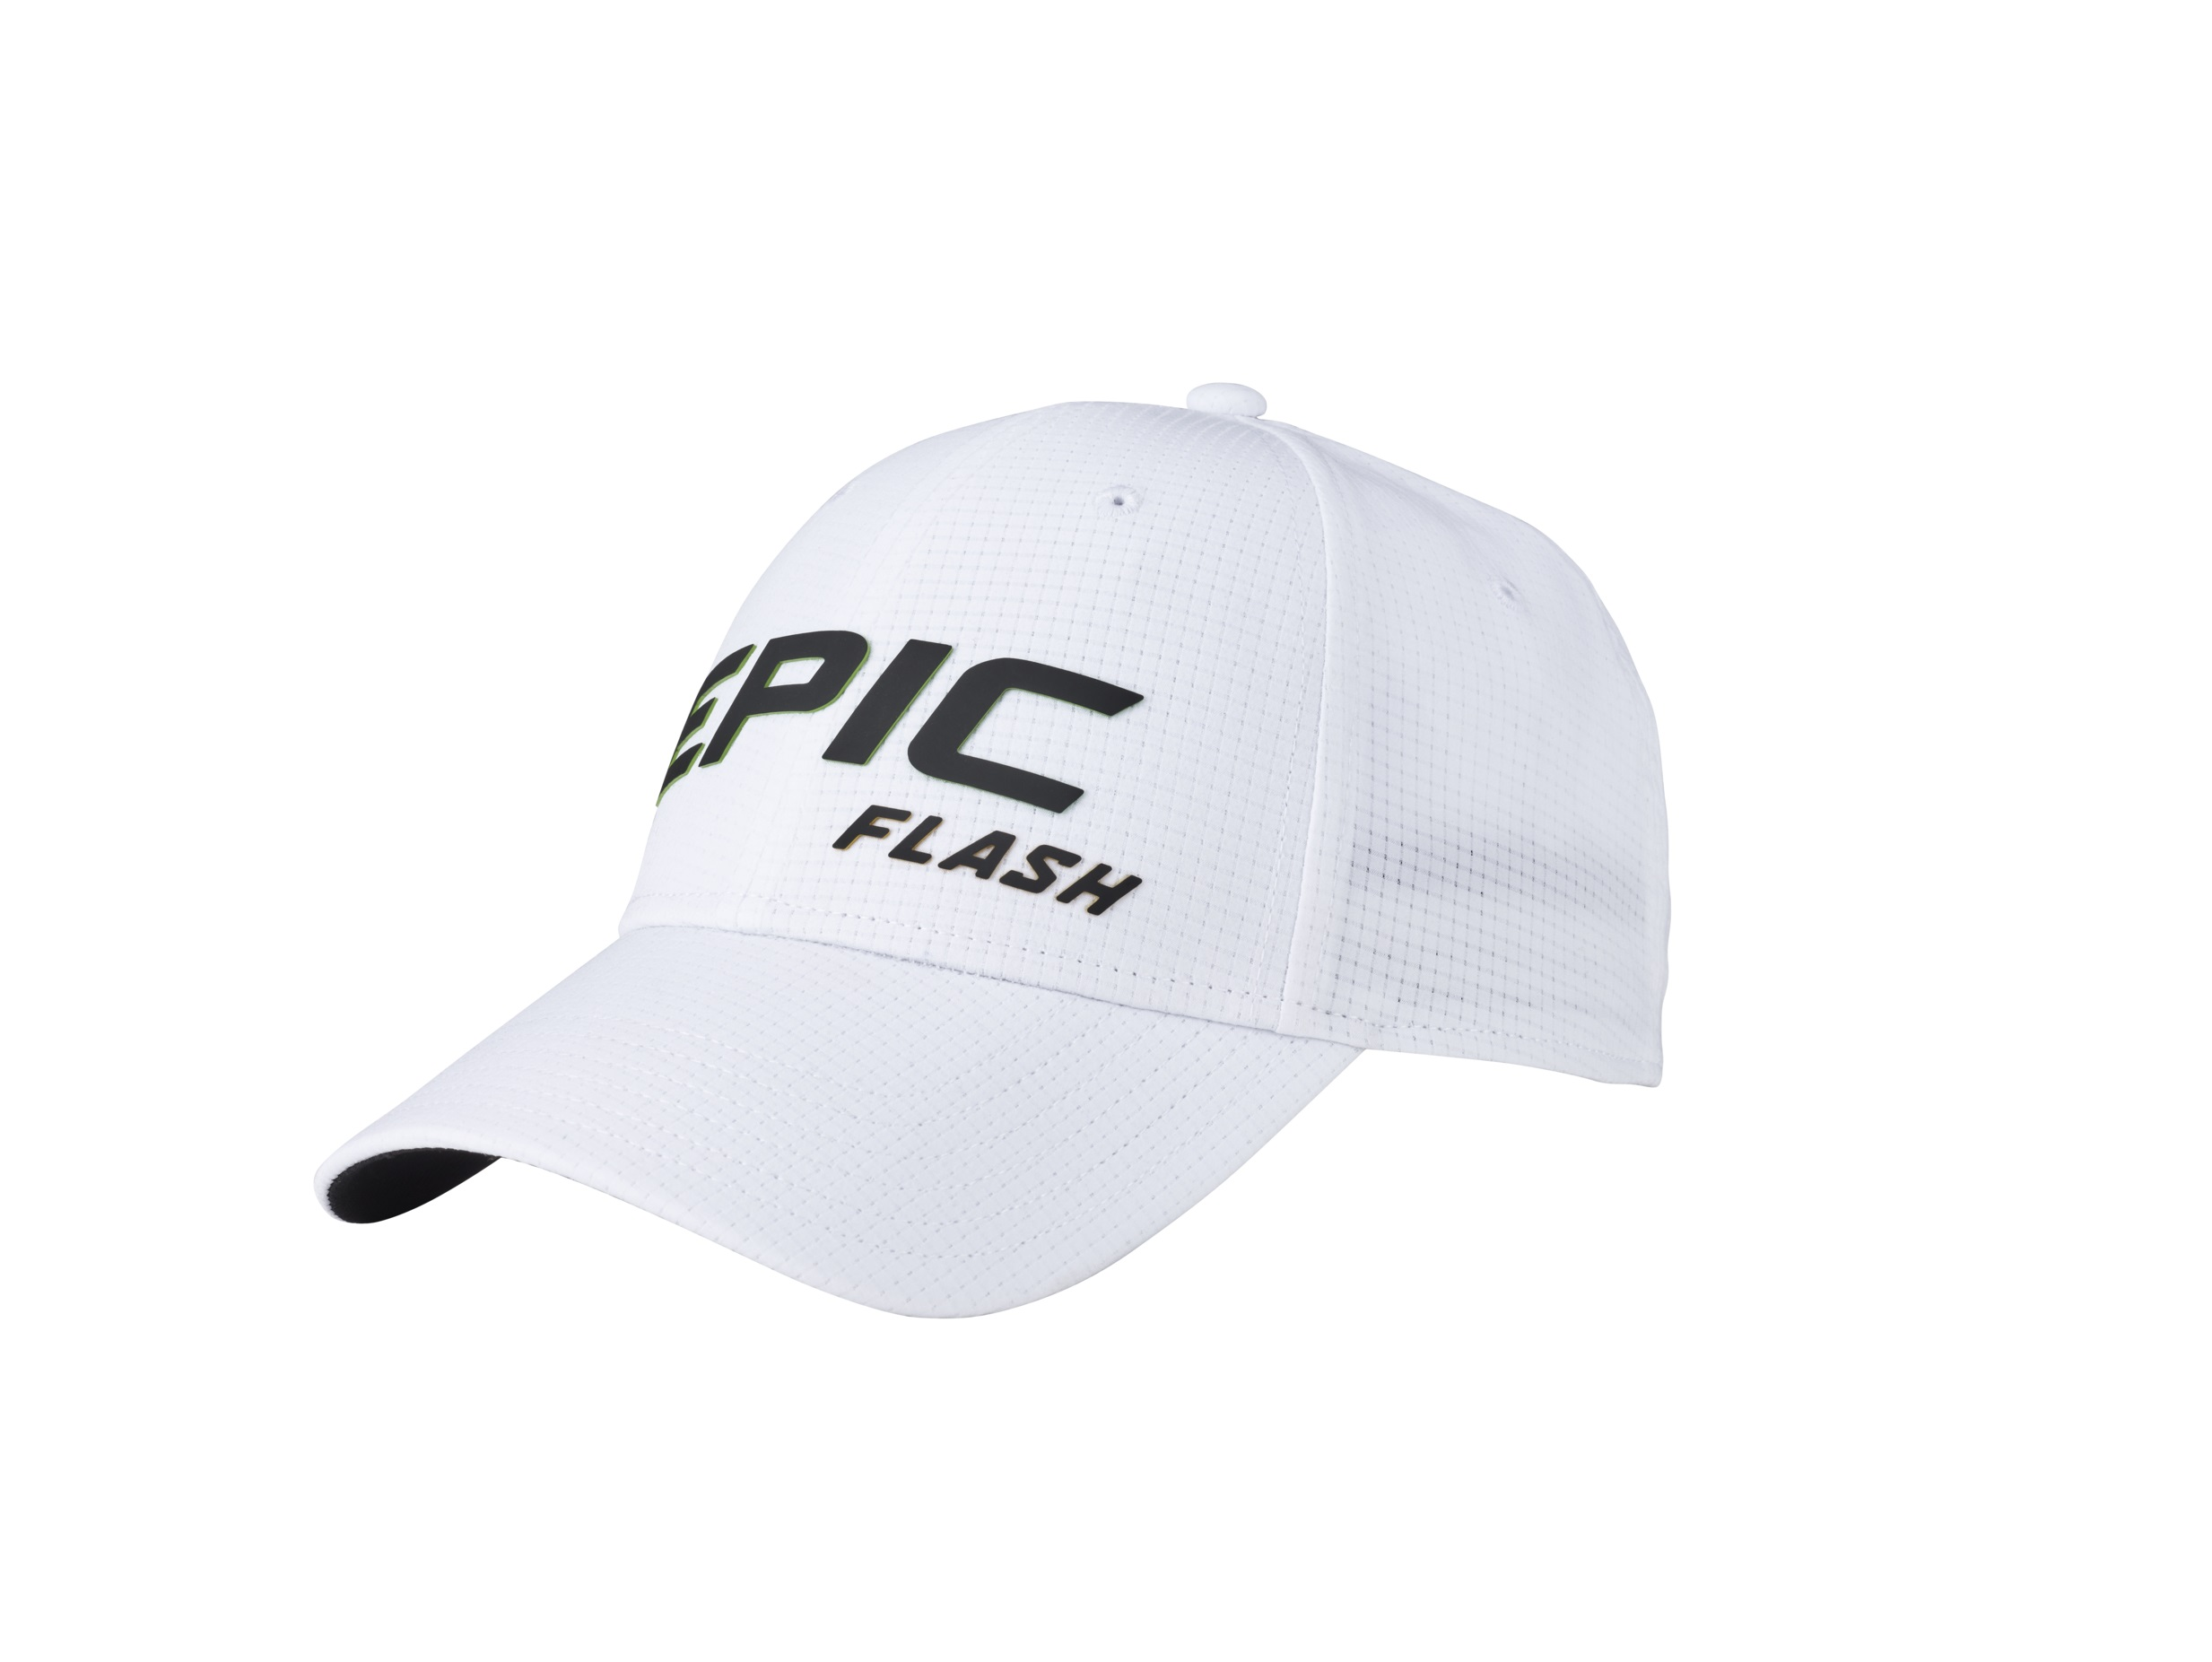 316c93ff41b Callaway Golf- Epic Flash Hat